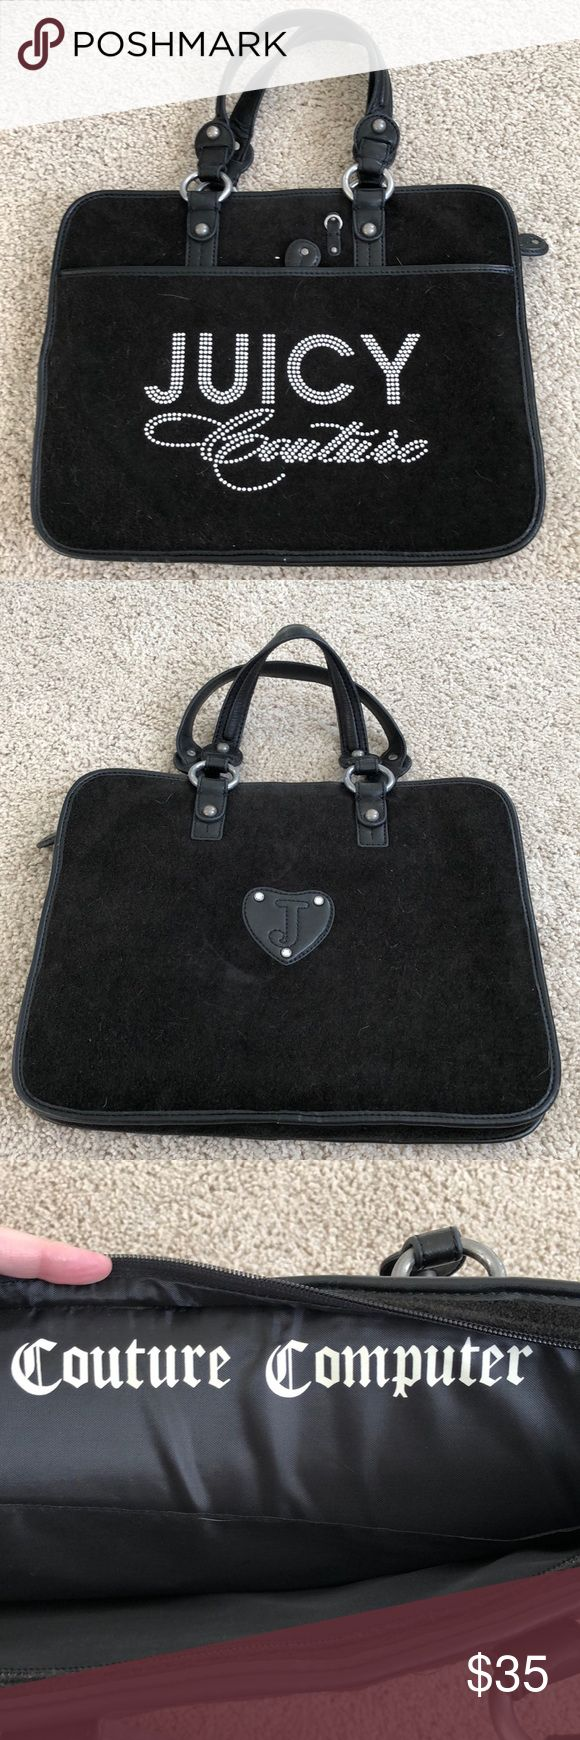 Juice Couture laptop bag Black bedazzled Juice Couture laptop carrying bag. Bag is in great condition, barely used. Juicy Couture Bags Laptop Bags